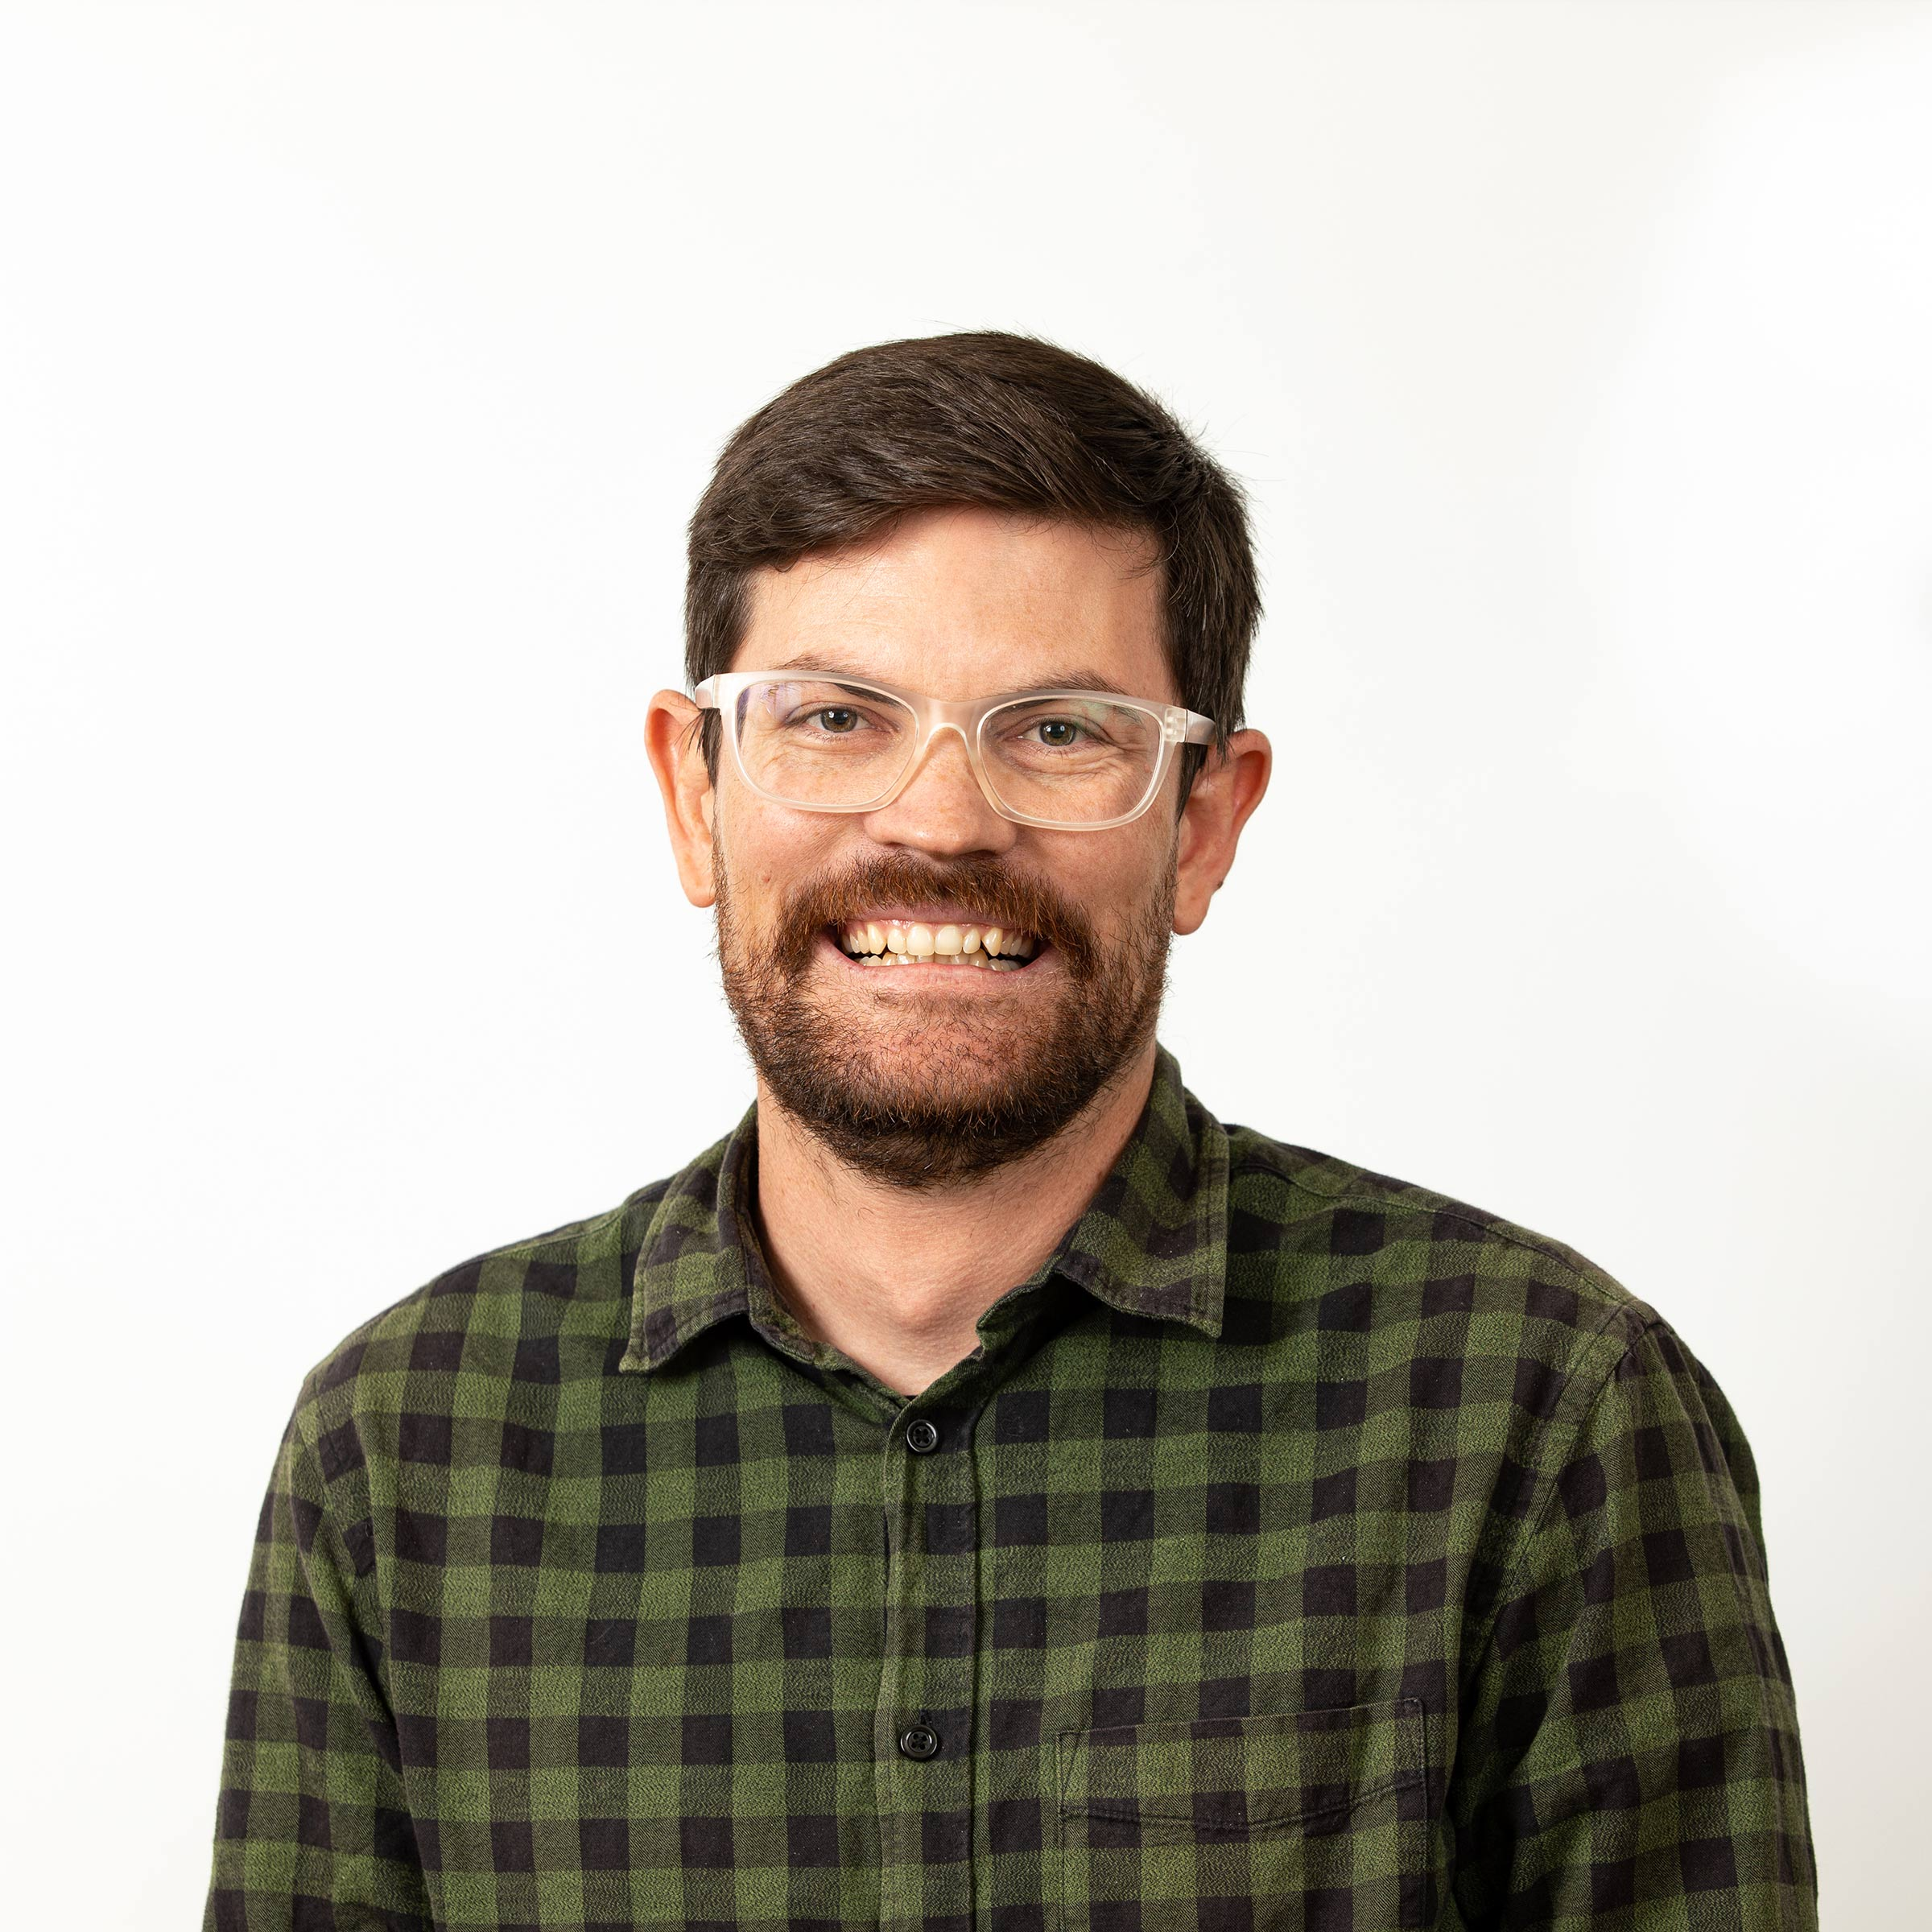 happy image of a man wearing glasses and looking directly at the camera